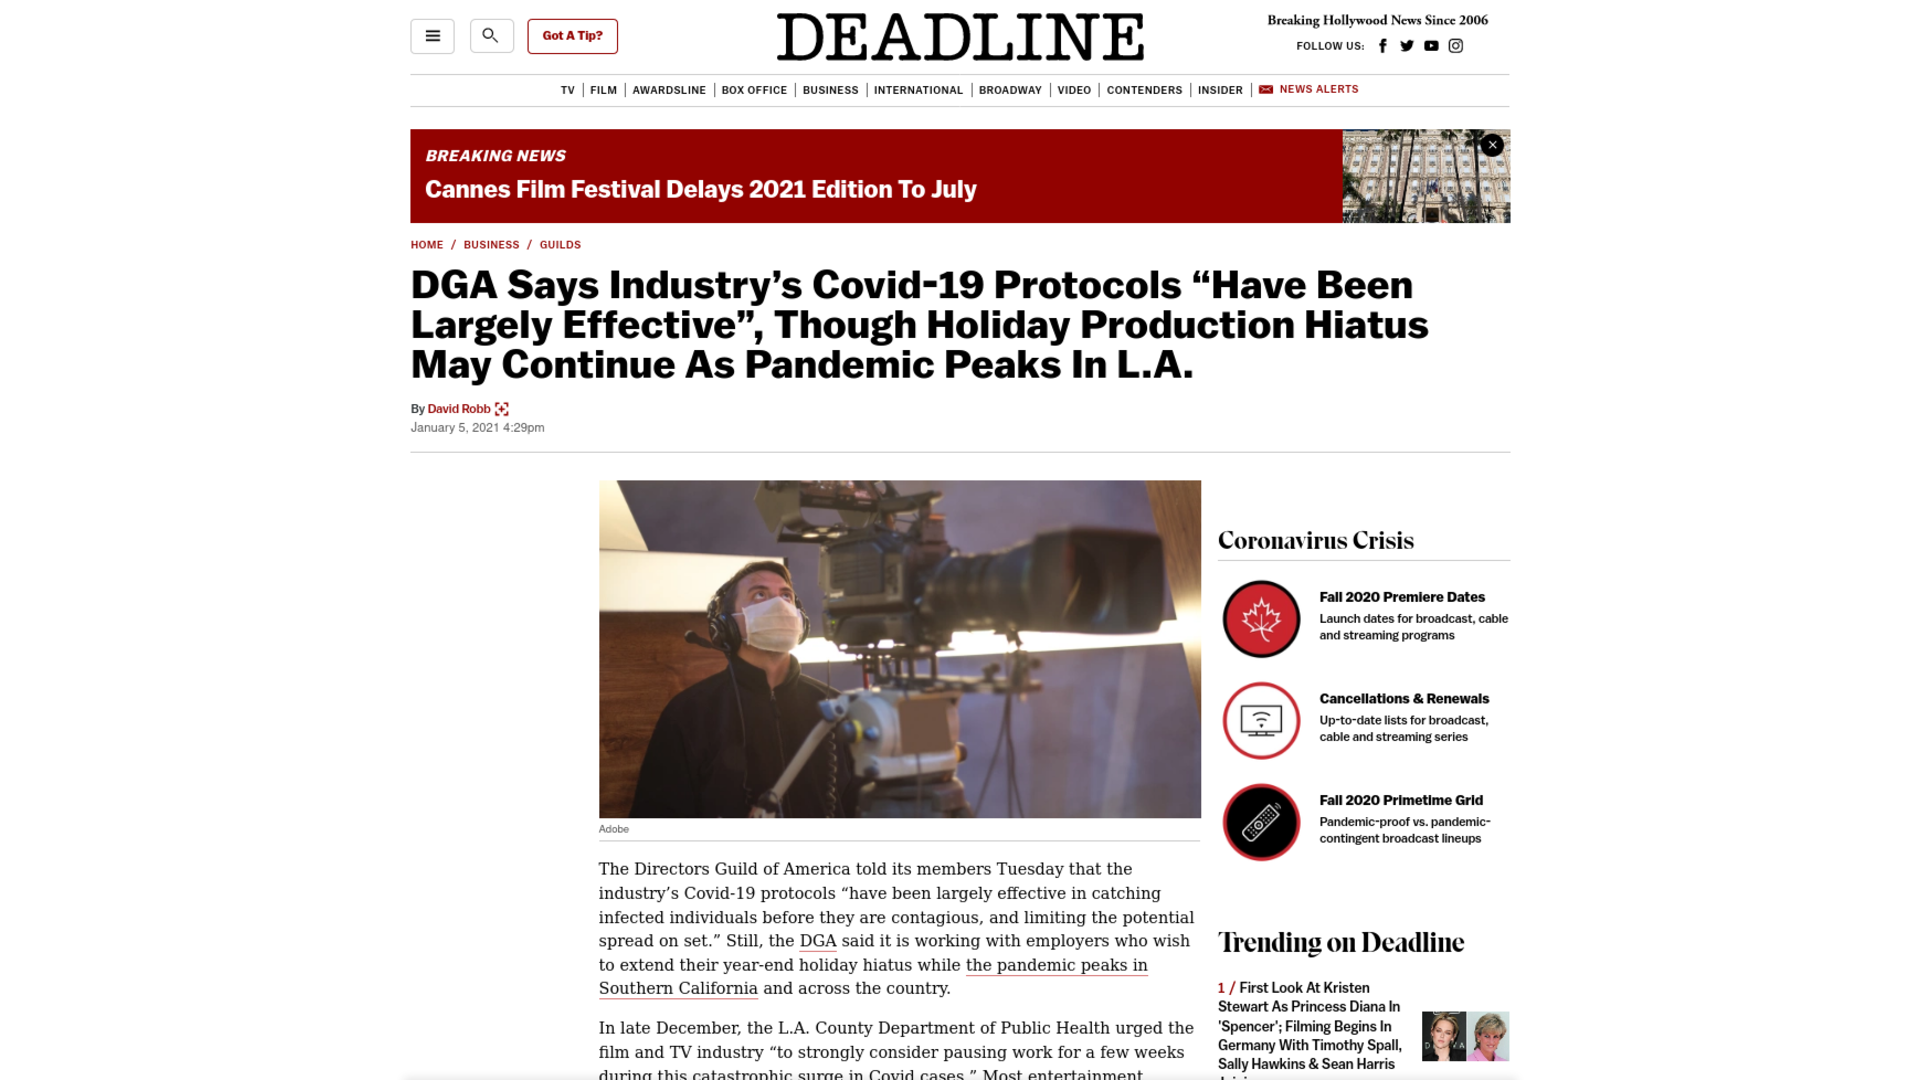 "Fairness Rocks News DGA Says Industry's Covid-19 Protocols ""Have Been Largely Effective"", Though Holiday Production Hiatus May Continue As Pandemic Peaks In L.A."